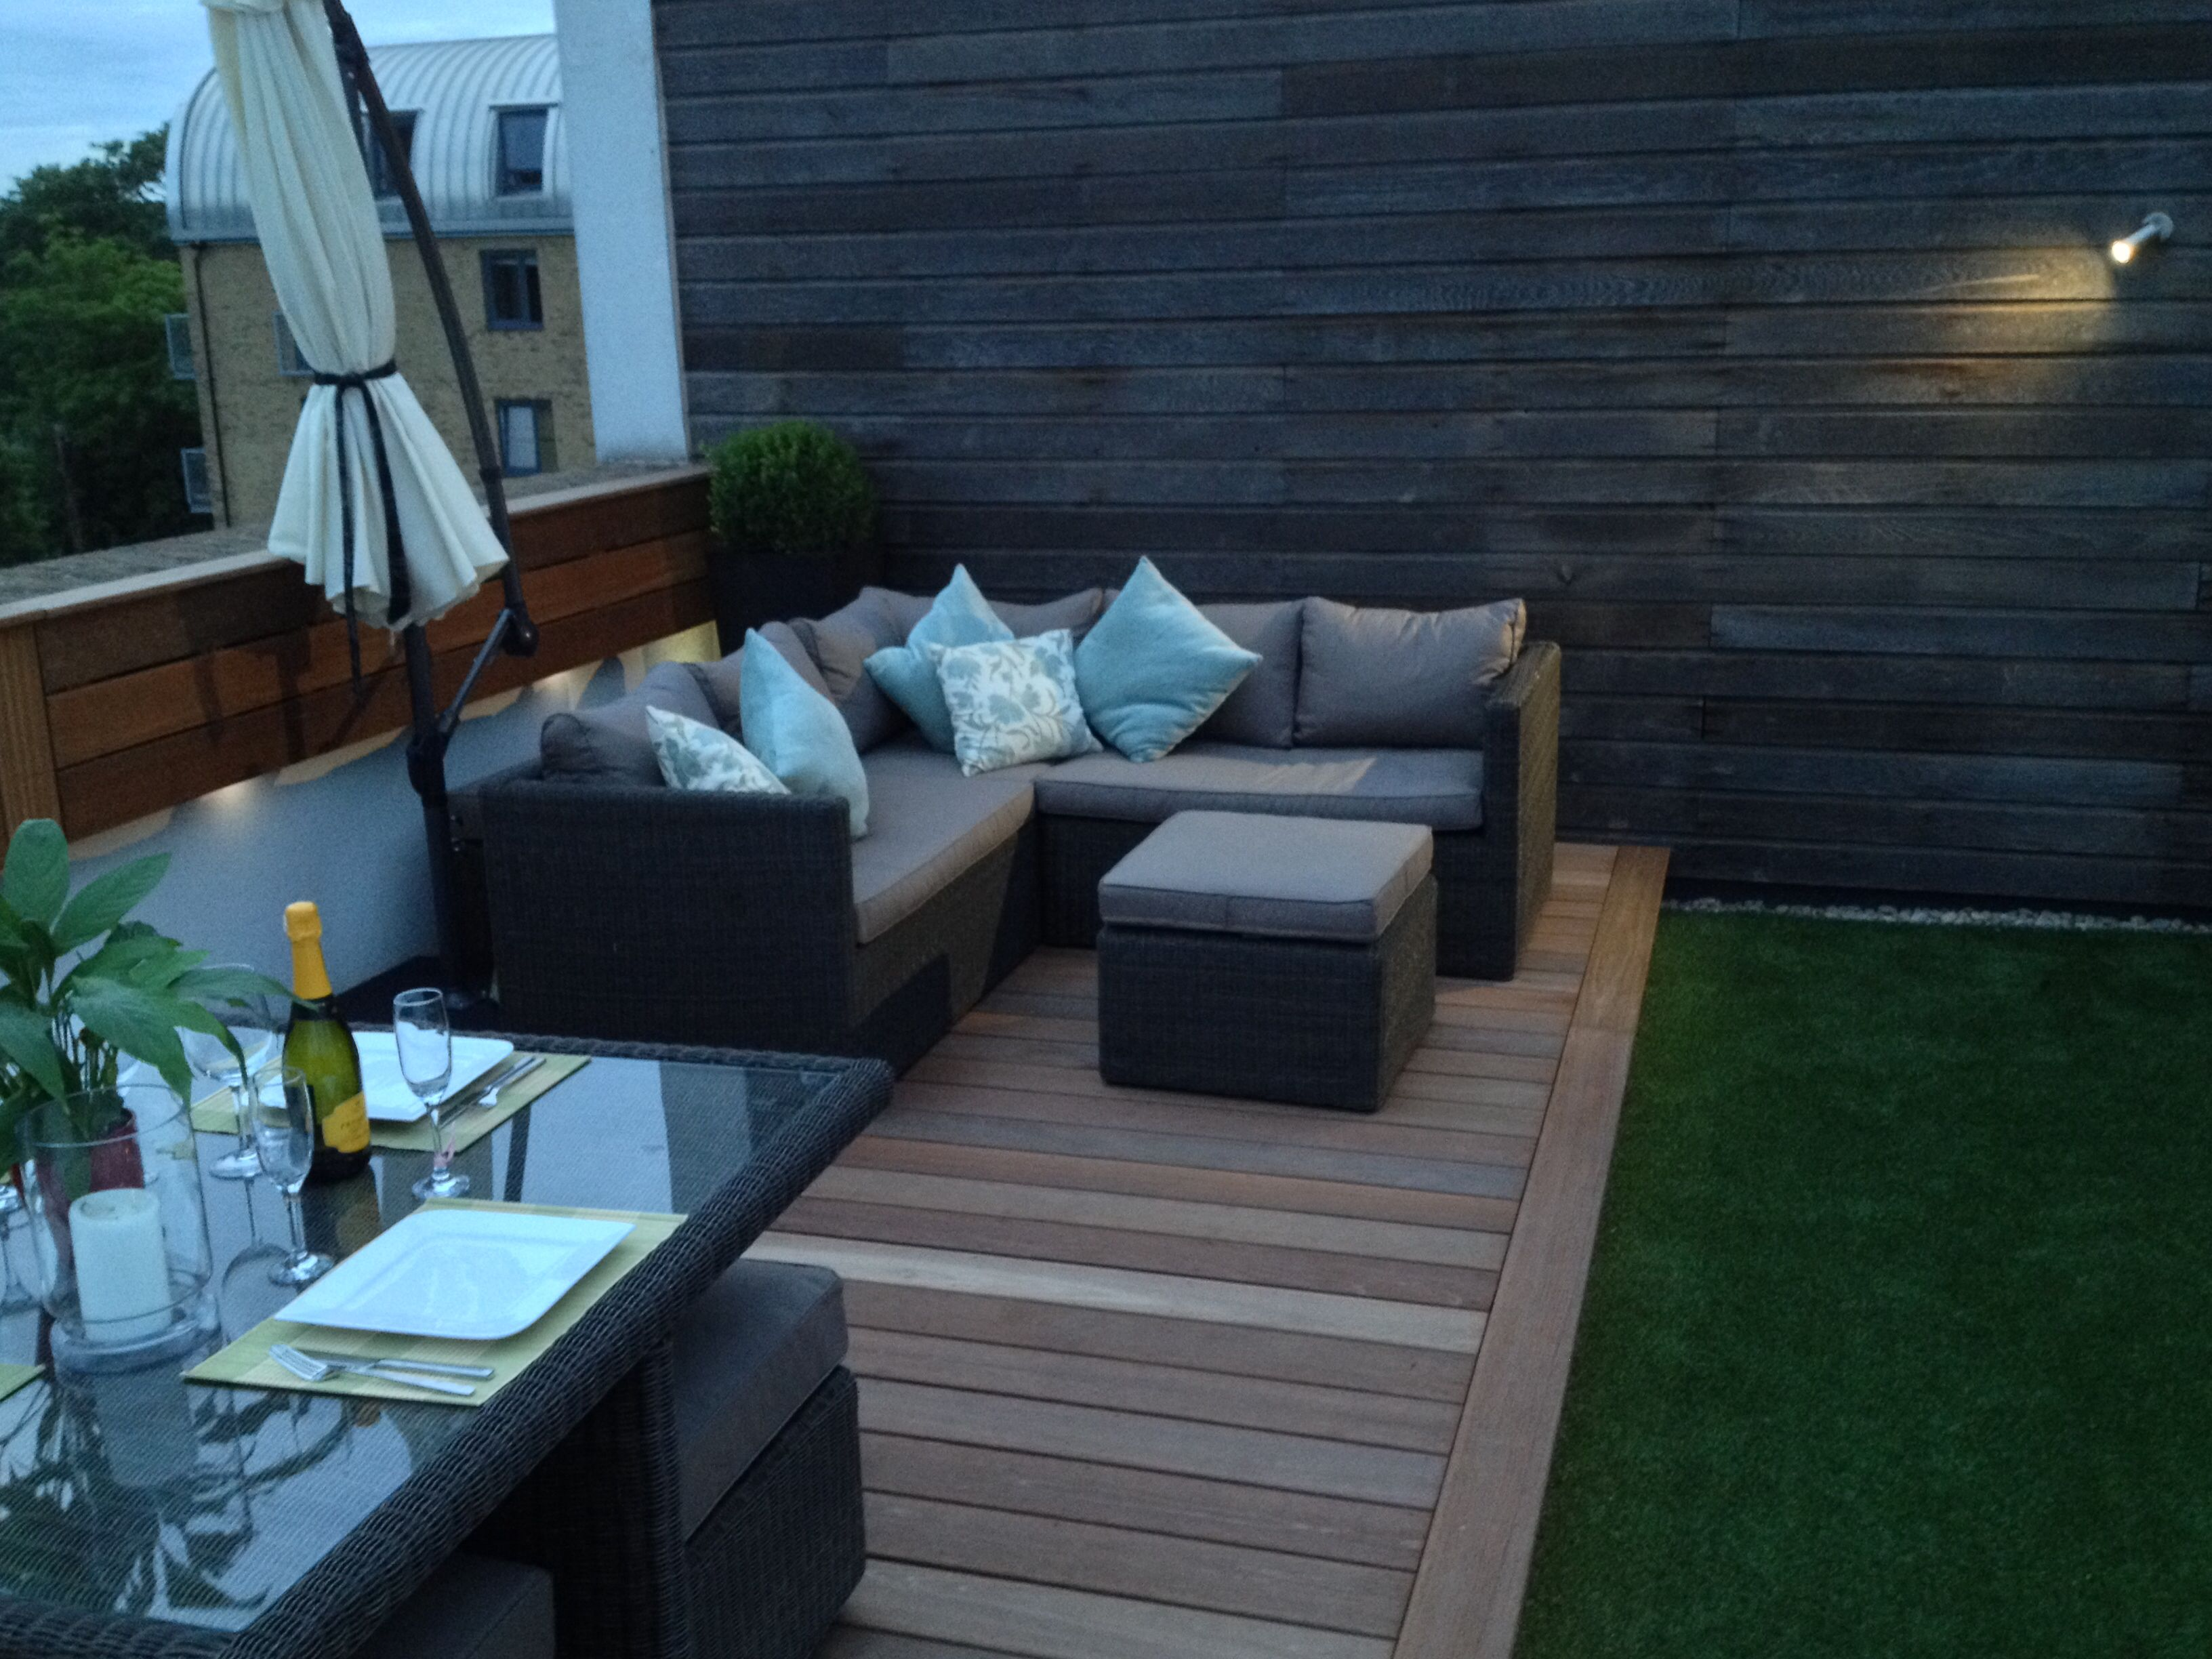 Roof terrace furniture on hardwood deck with artificial grass